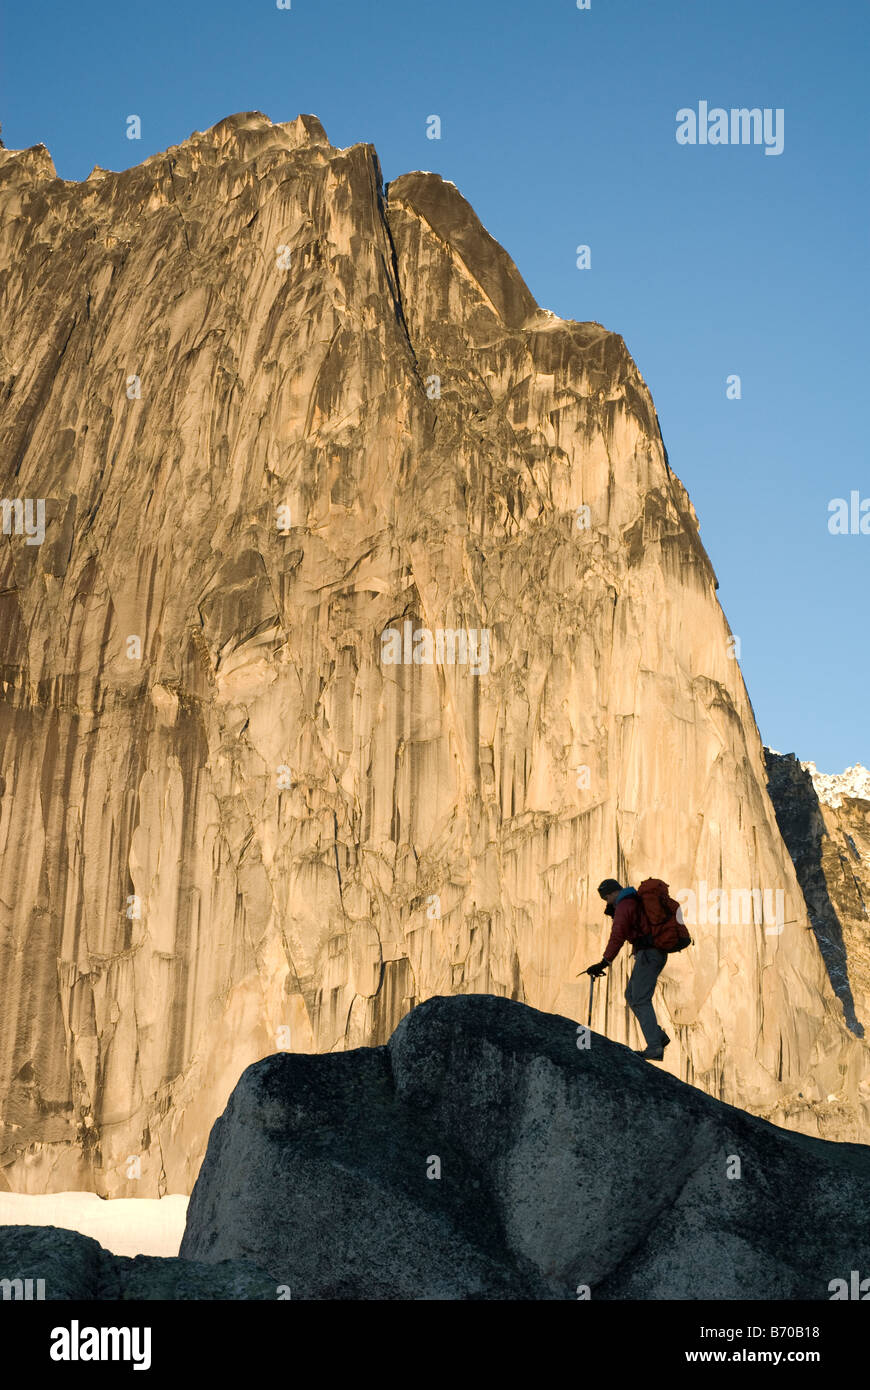 Man mountaineering in the Bugaboo Provincial Park, British Columbia, Canada (silhouette). Stock Photo